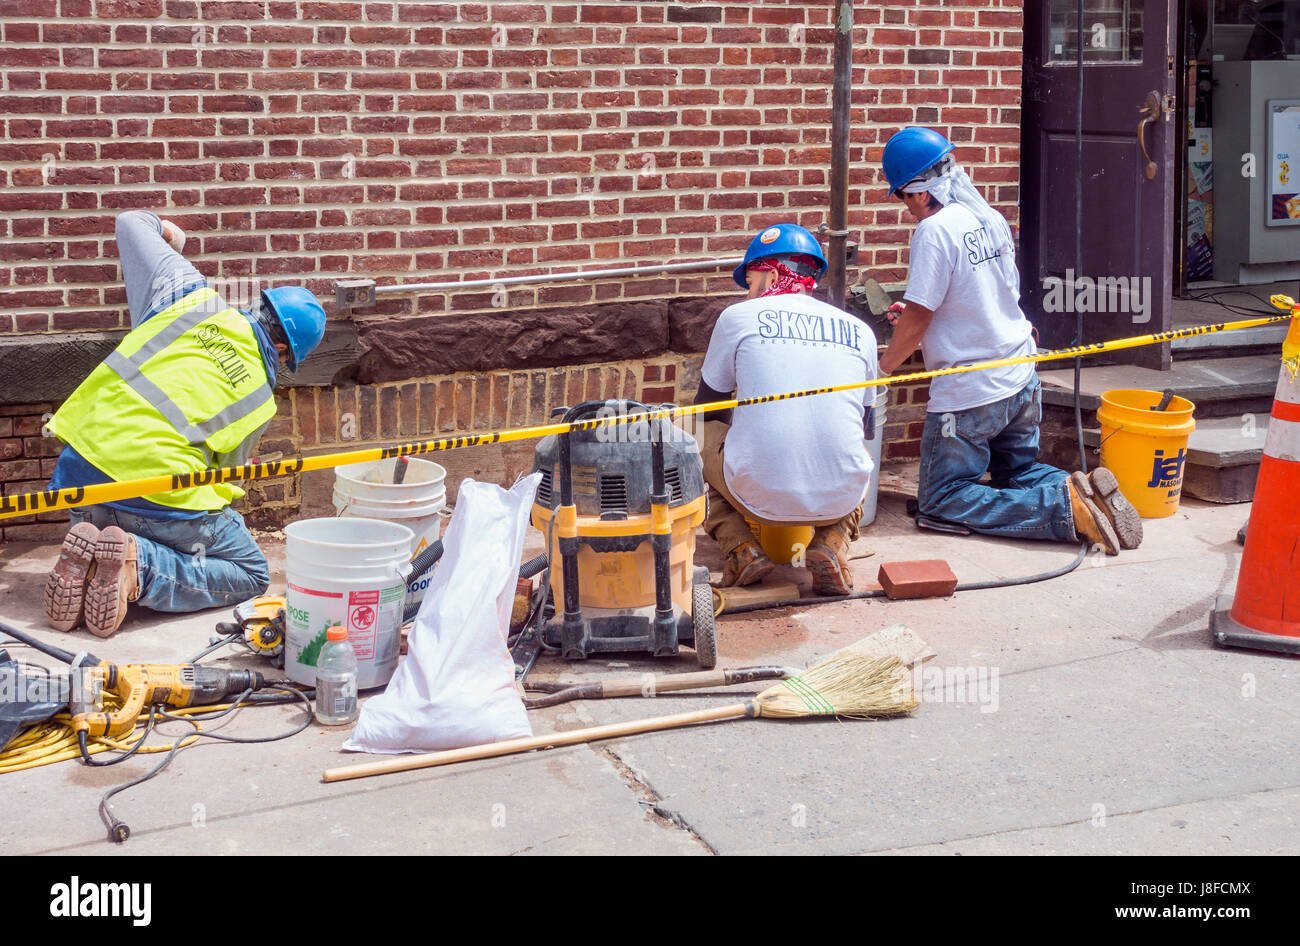 Three men repairing and restoring the red brick outside wall of a building in Lower Manhattan - Stock Image